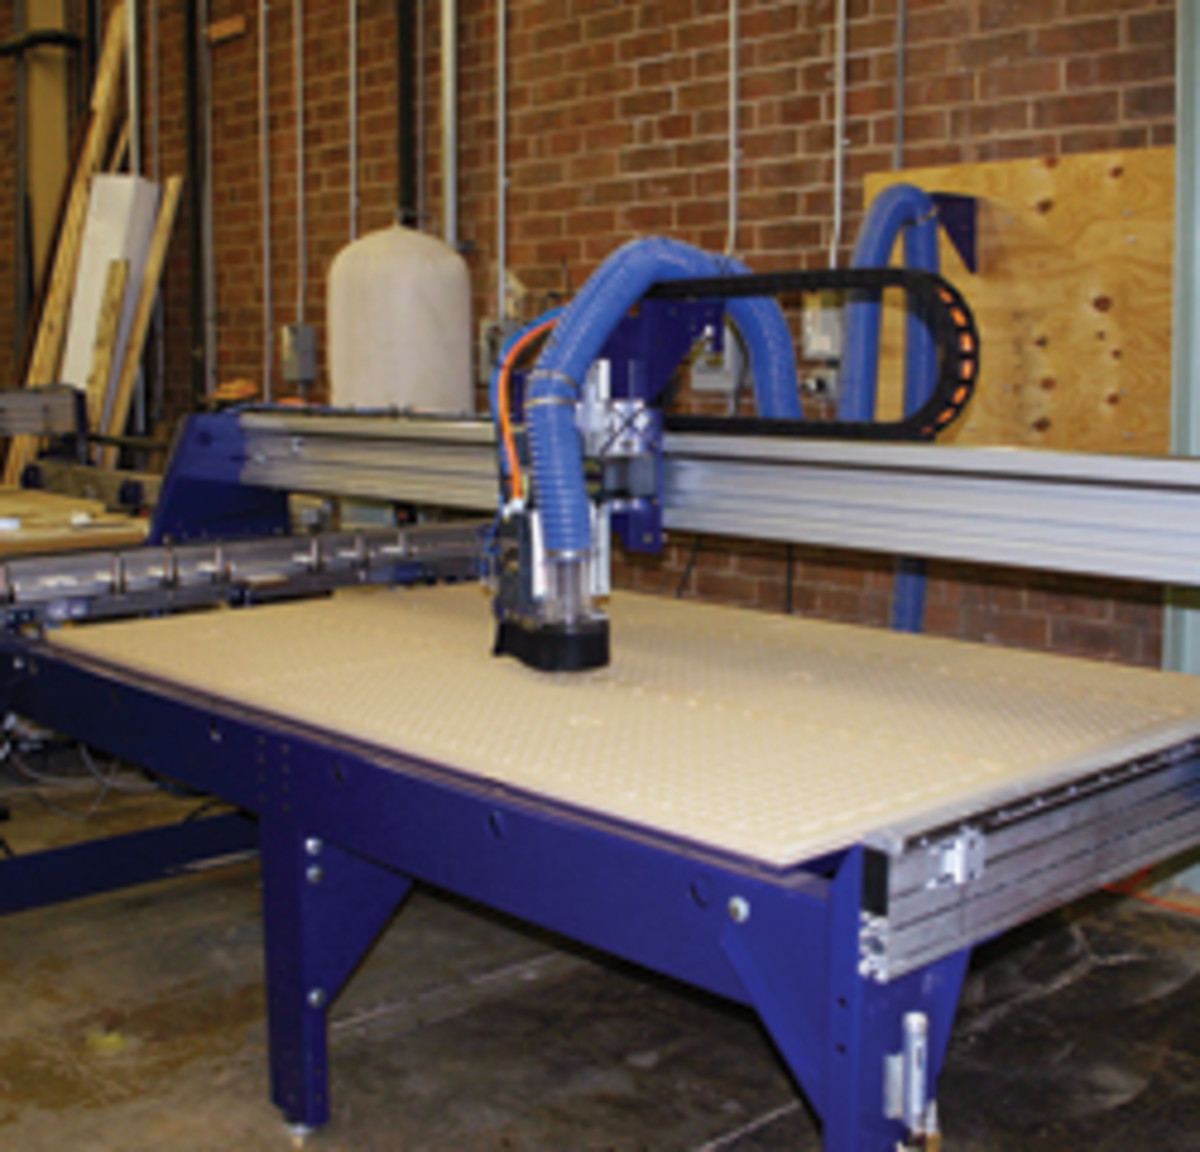 ShopBot's new PRSalpha with the rails on the short side of the machine.